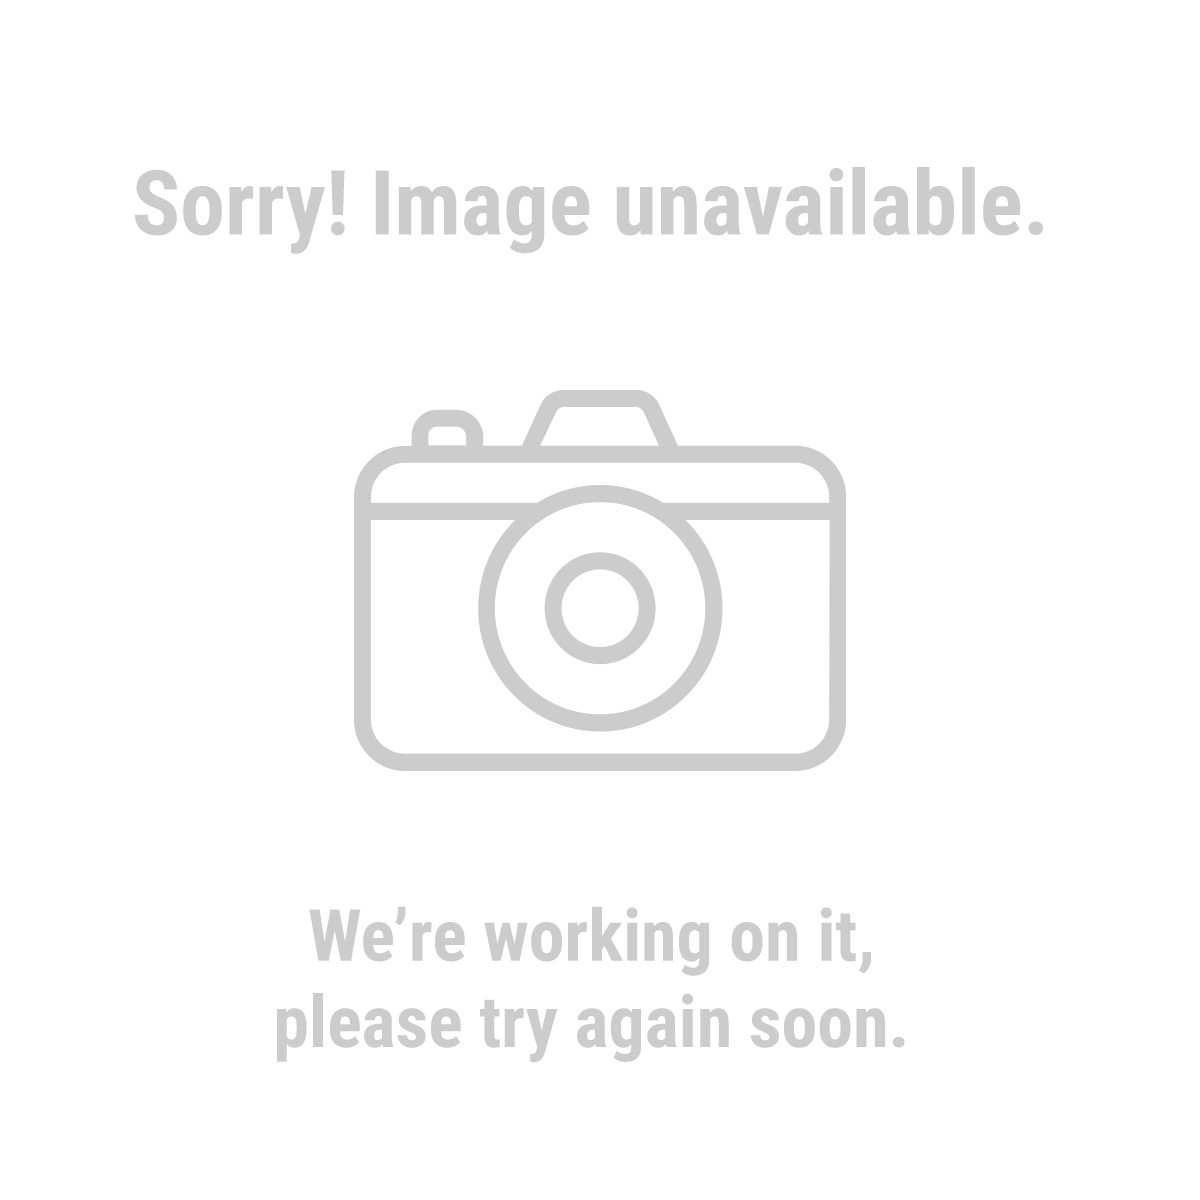 Central-Machinery 67090 10 Ton Hydraulic Log Splitter